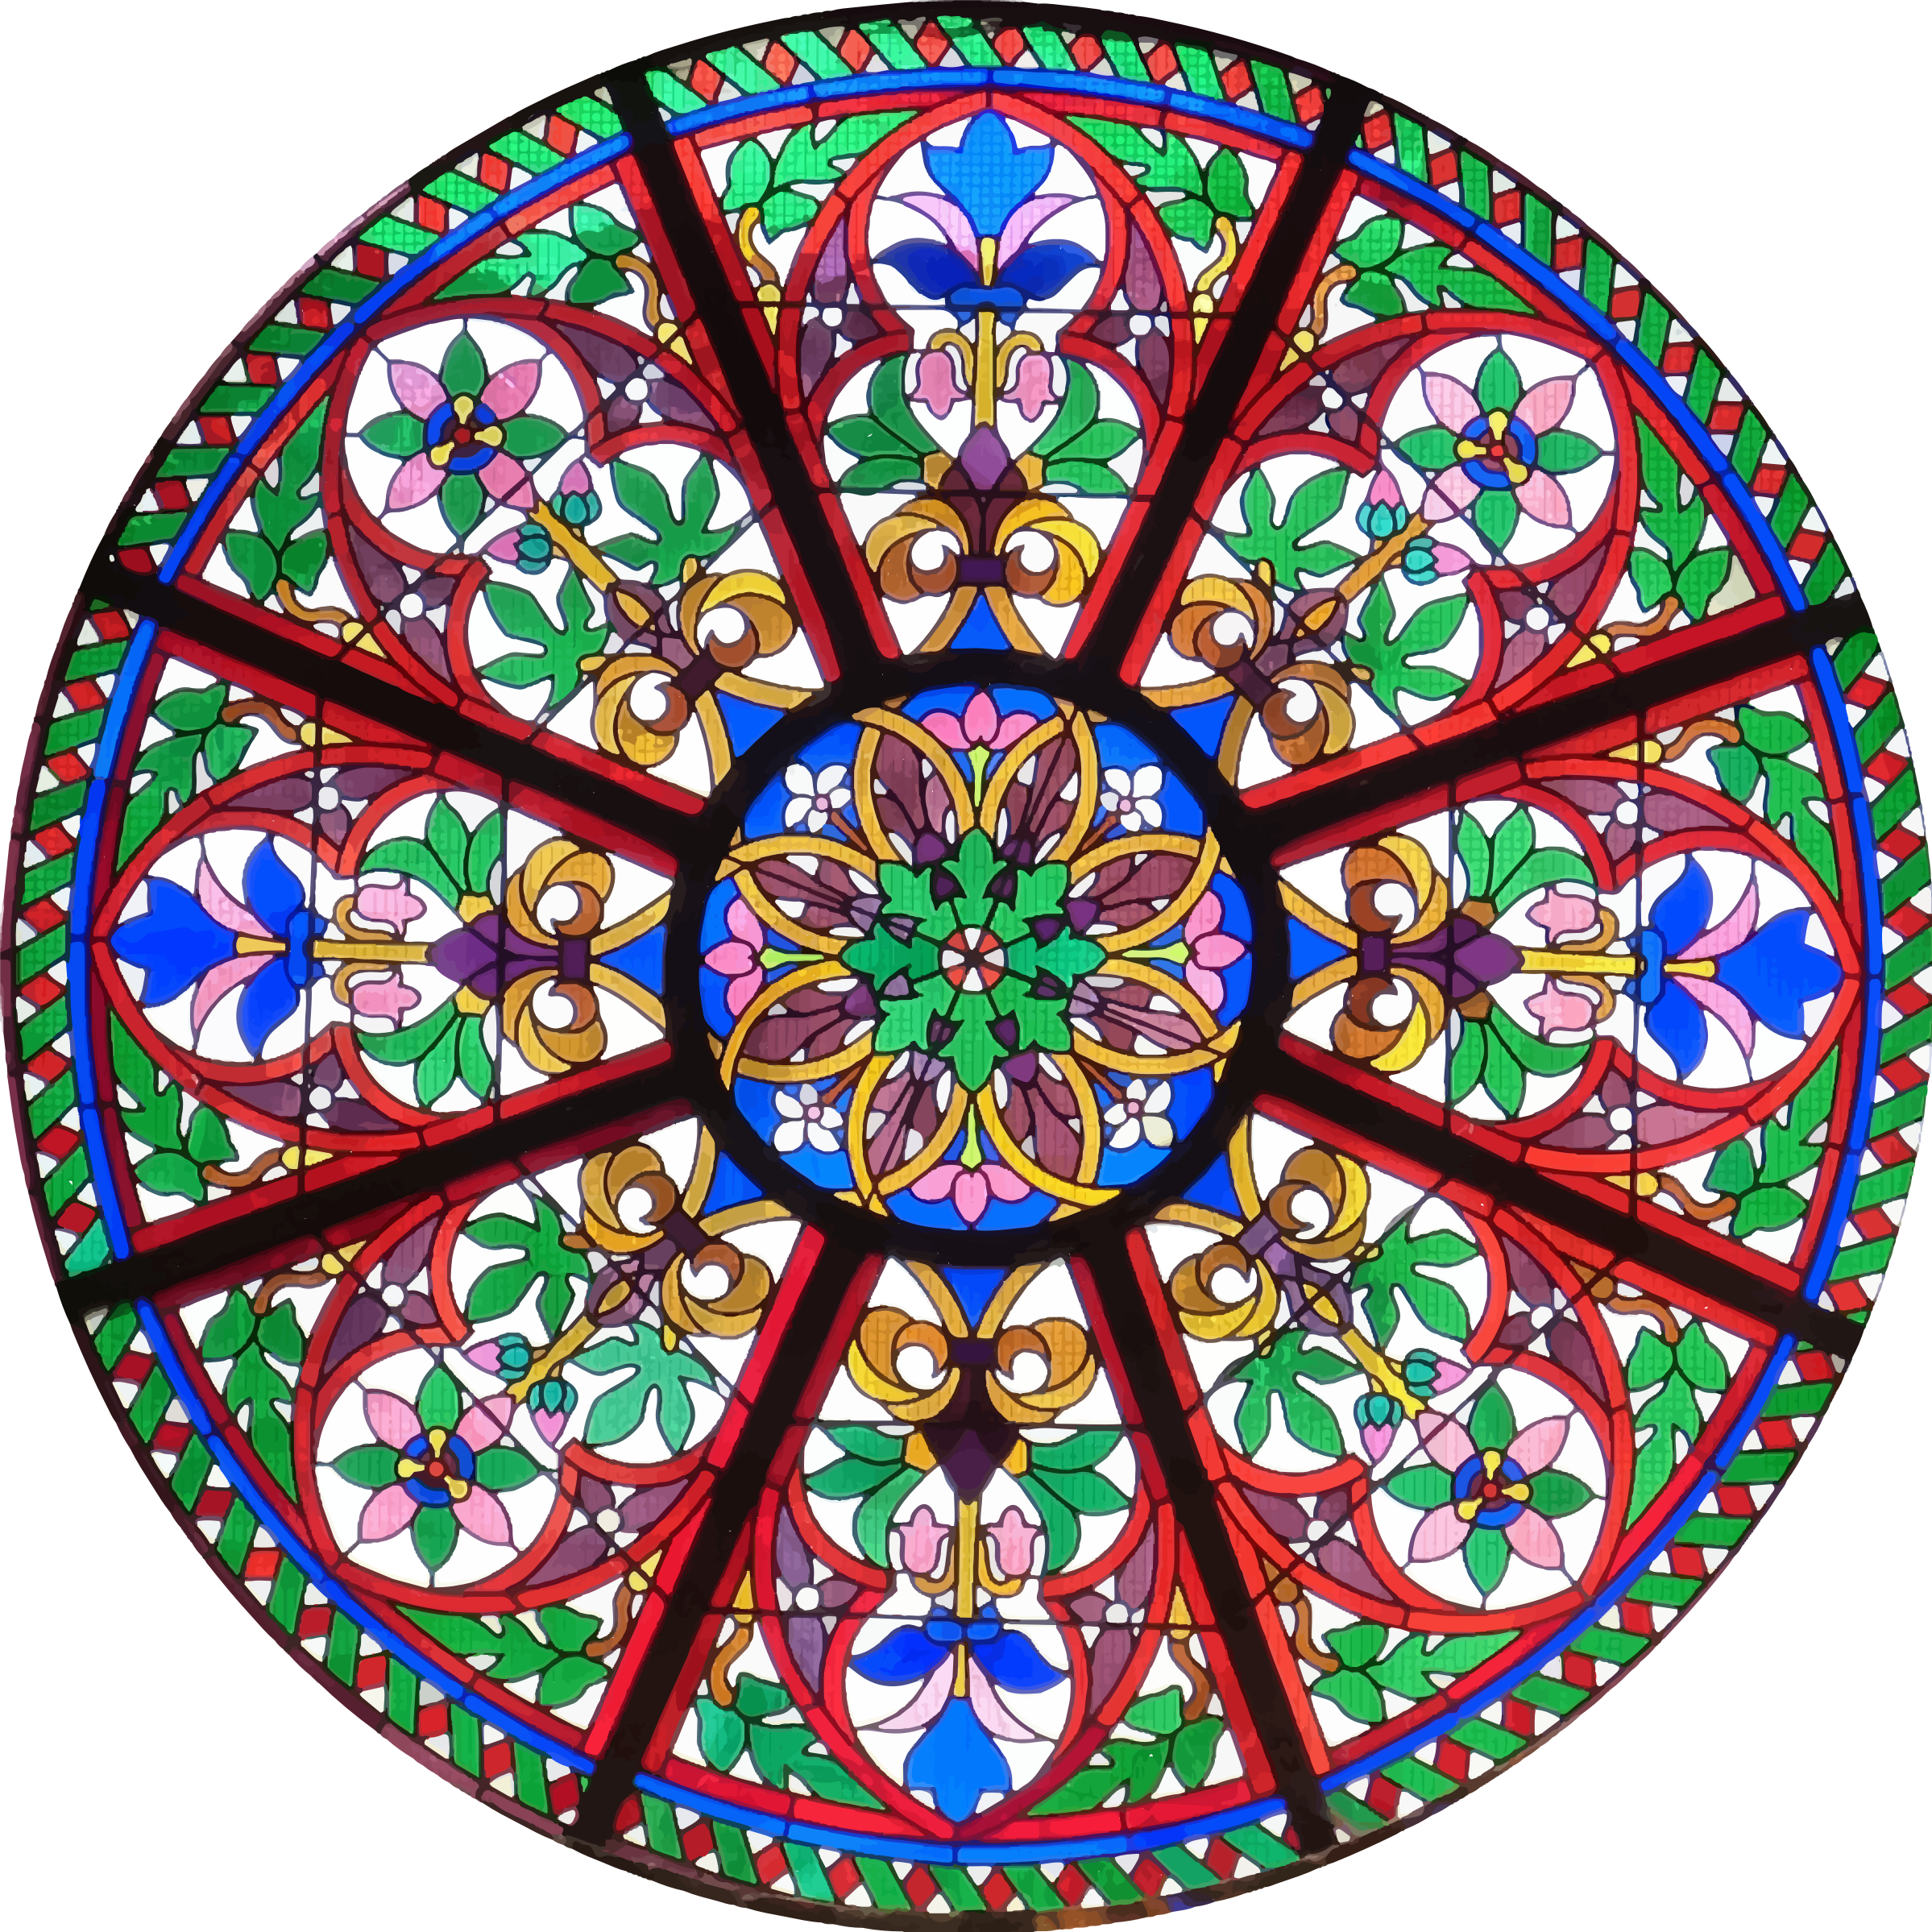 Circular Church Stained Glass Window by GDJ